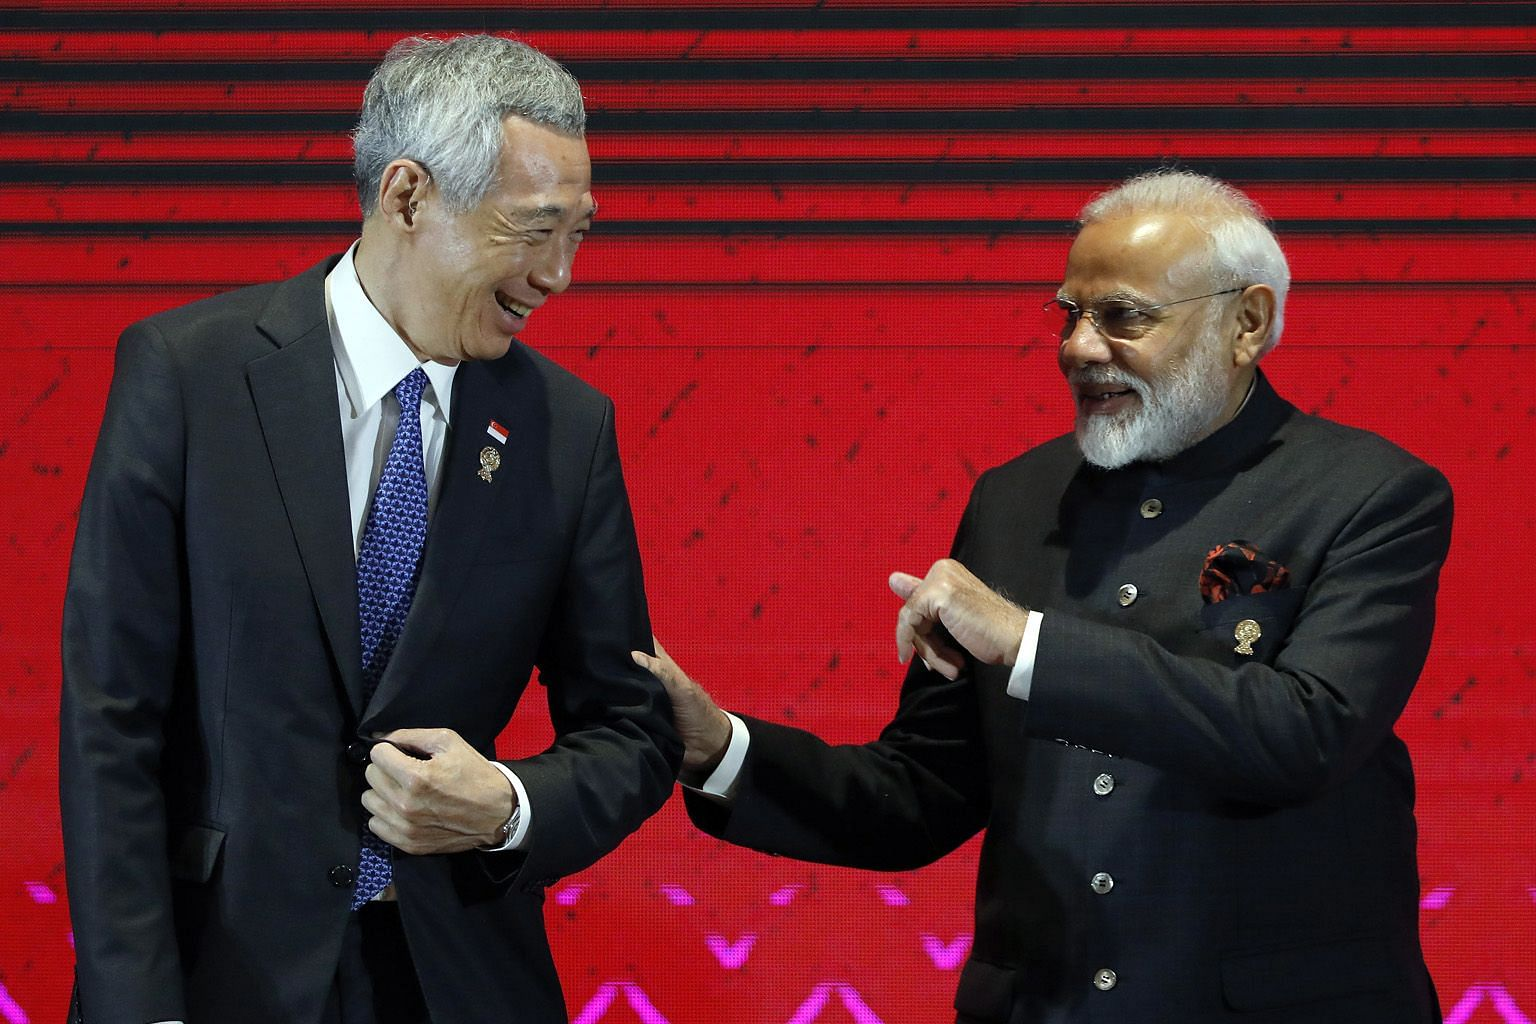 Prime Minister Lee Hsien Loong with Indian PM Narendra Modi at the 16th Asean-India Summit, held as part of the 35th Asean Summit in Nonthaburi province, Thailand, yesterday. The delay in signing the Regional Comprehensive Economic Partnership (RCEP)